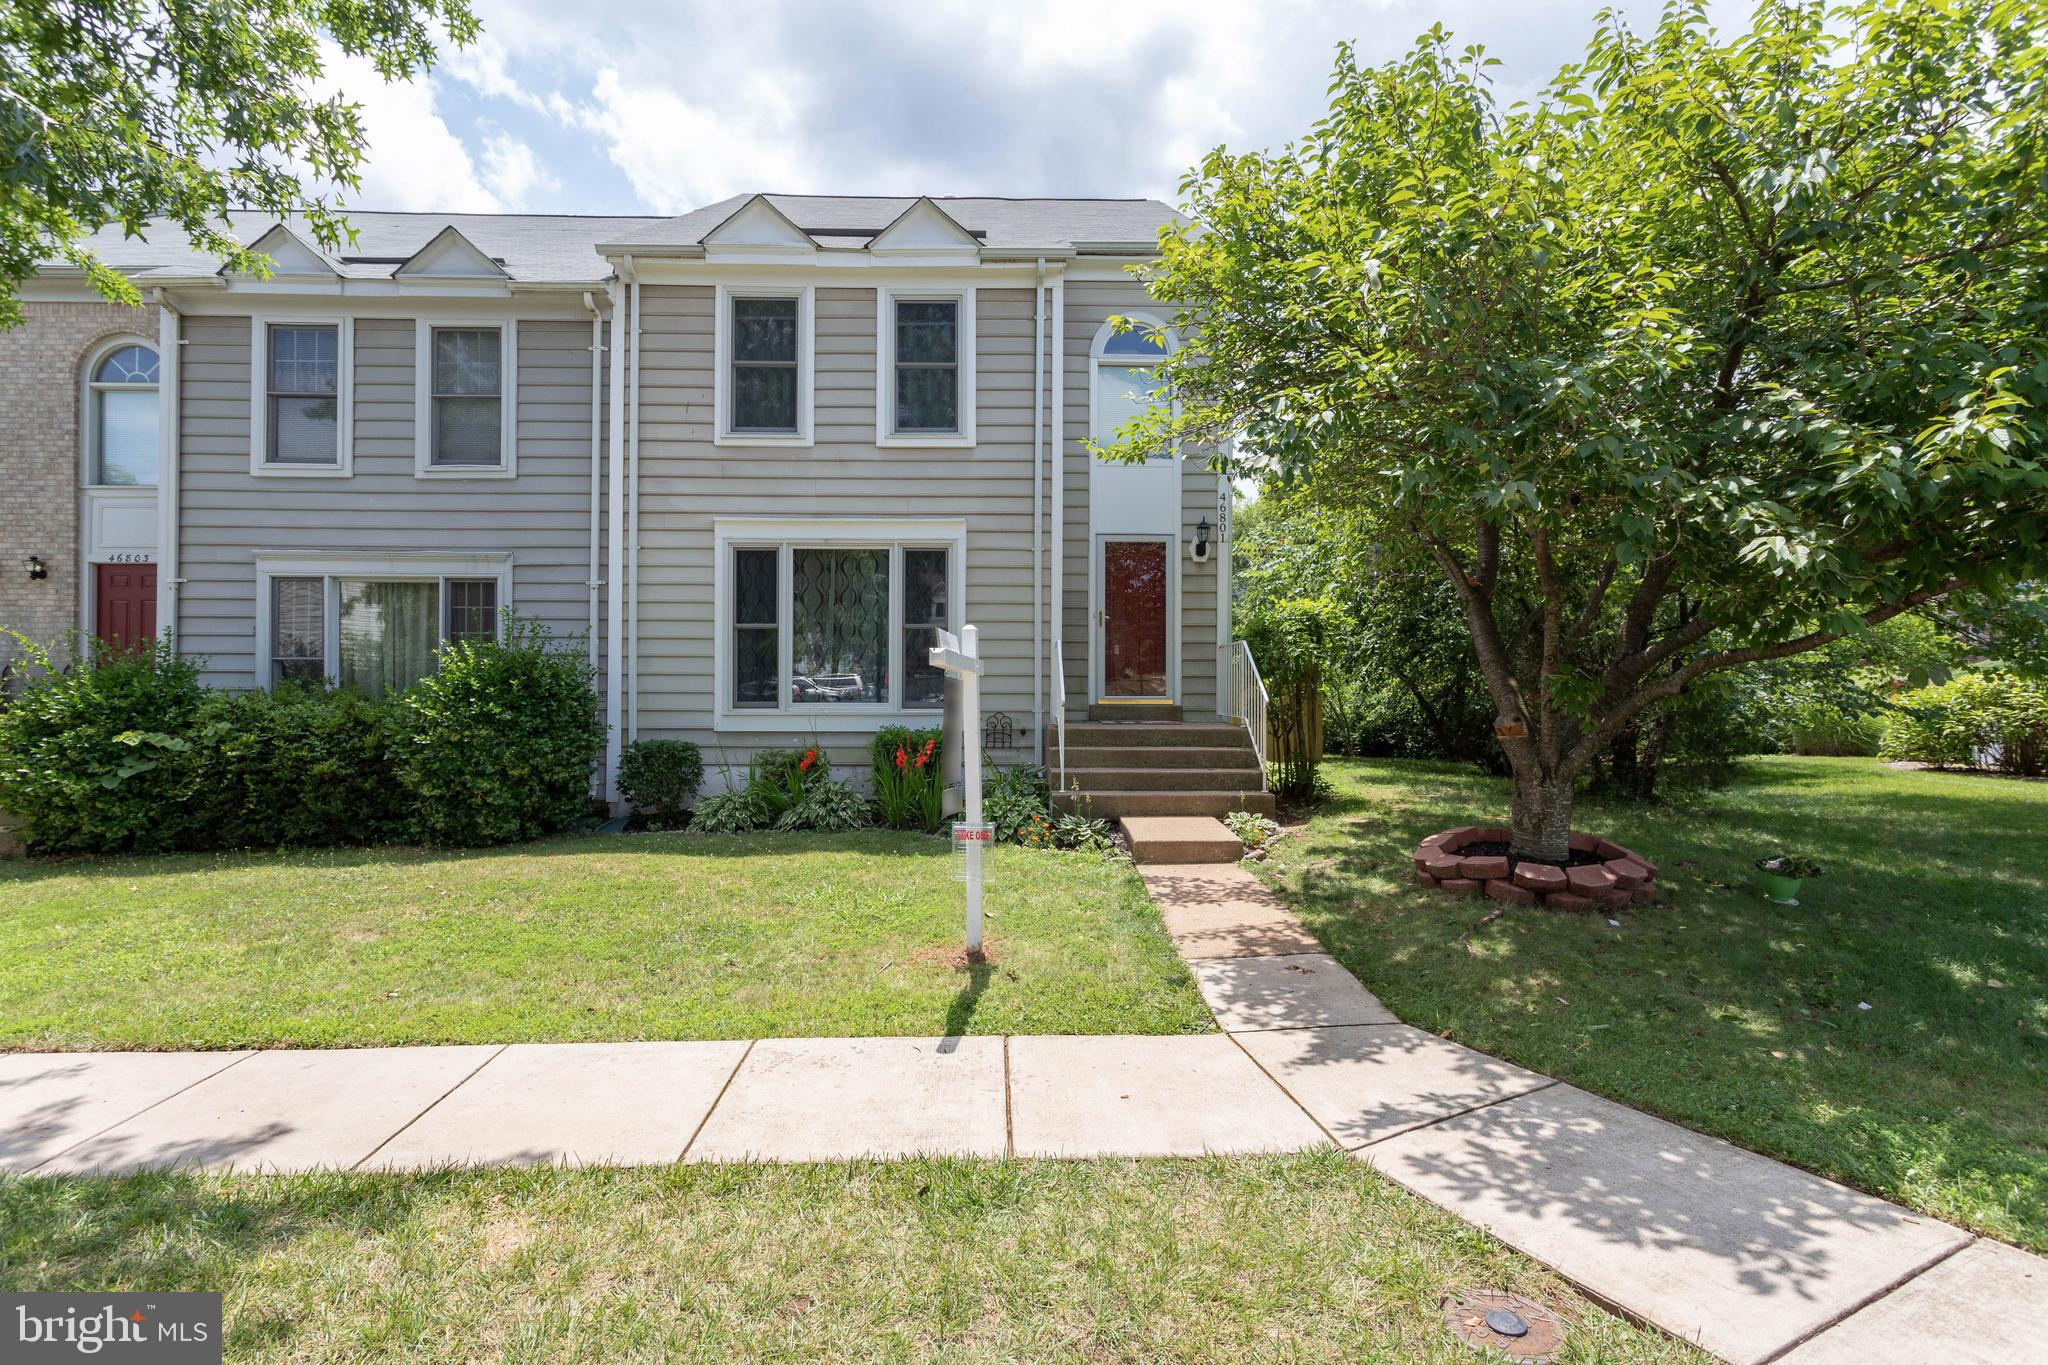 END UNIT 3 Level Townhouse backed to the Wooded Area. Over 70K worth of upgrades. Major renovation in the last 3 years including bathroom upgrades, Trex Deck and the Fence. New Kitchen Appliances 2018. 6 years old HVAC, 5 years old Roof and Windows. This house is A MUST SEE!